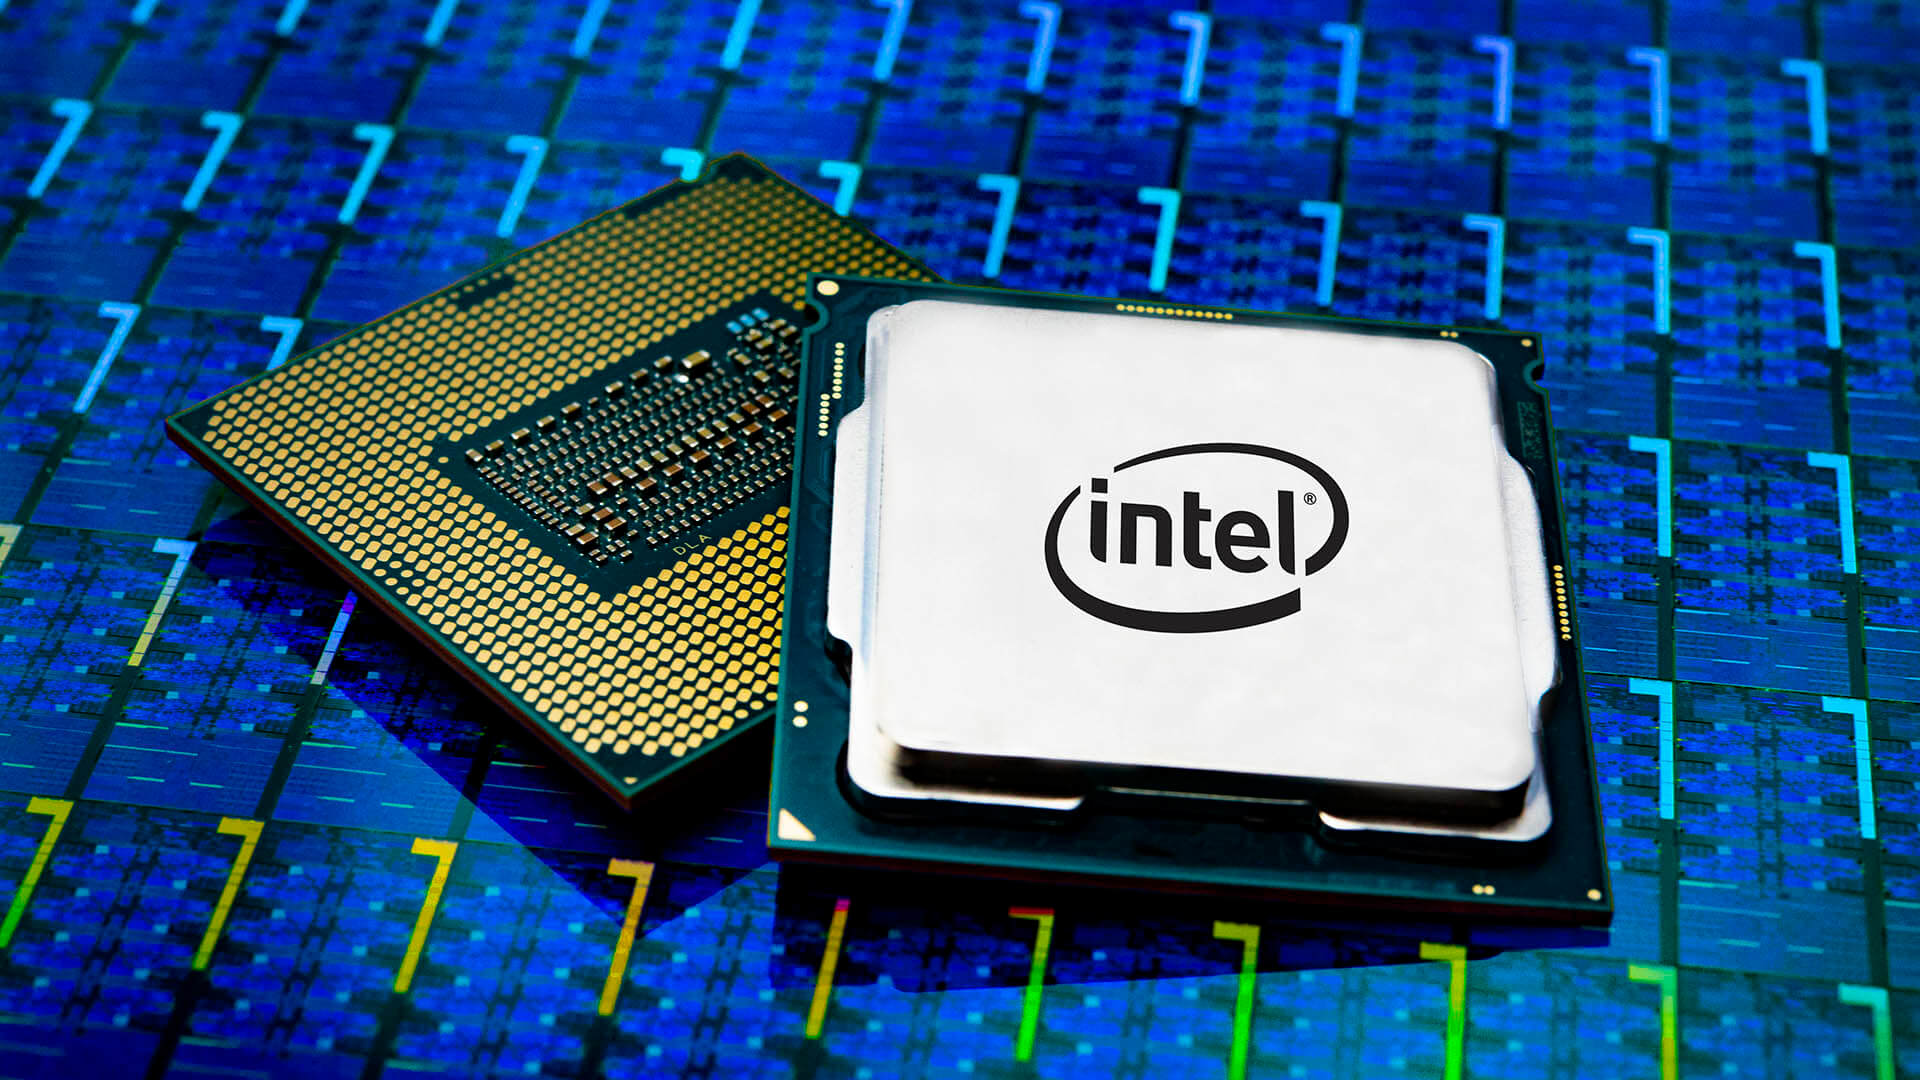 Intel considering to outsource its chip production